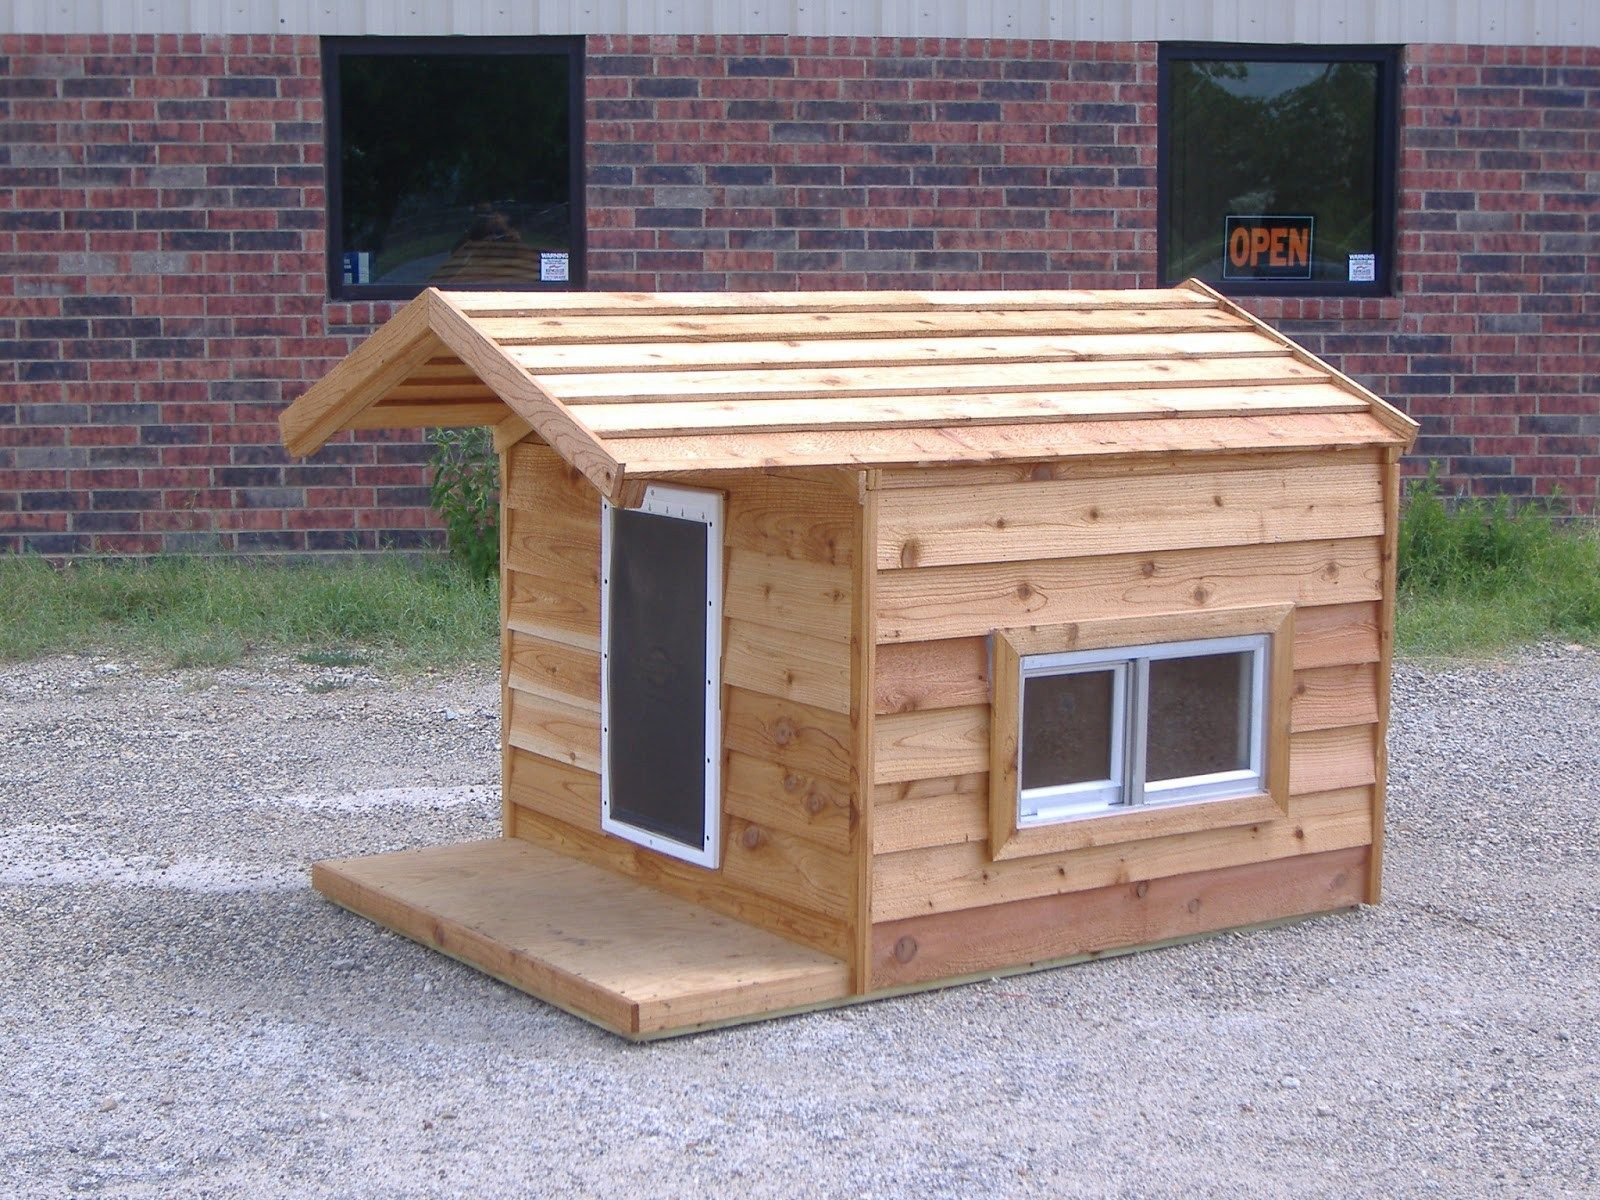 48x66x46 Custom Large Insulated Heated Dog House with Porch Open Top 2 Windows Hound Heater Door & 48x66x46 Custom Large Insulated Heated Dog House with Porch Open Top ...